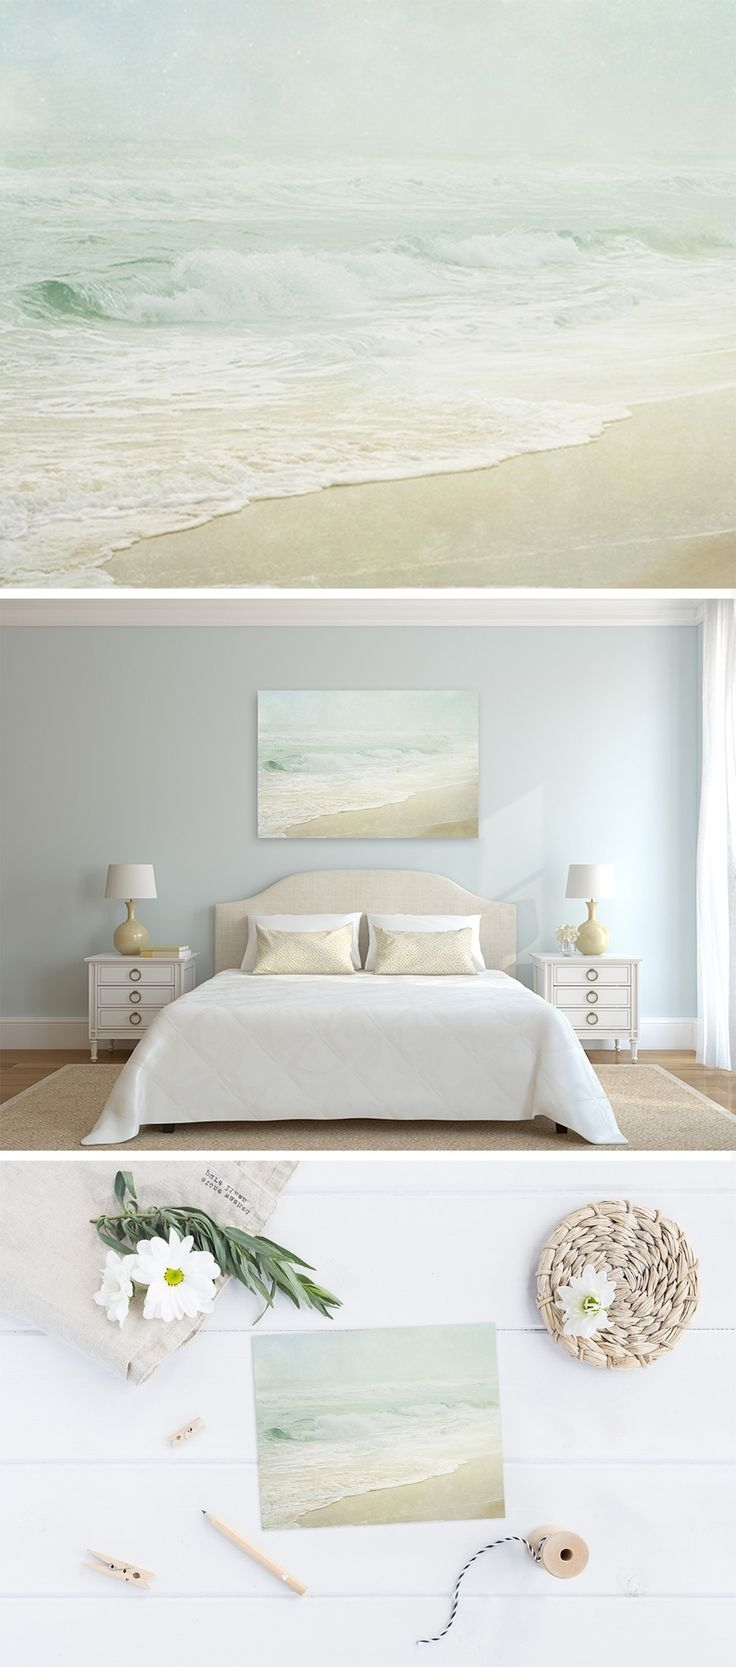 Chic Coastal Wall Art Canvas Crate Barrel Australia Ideas Decor Uk For Most  Current Coastal Wall